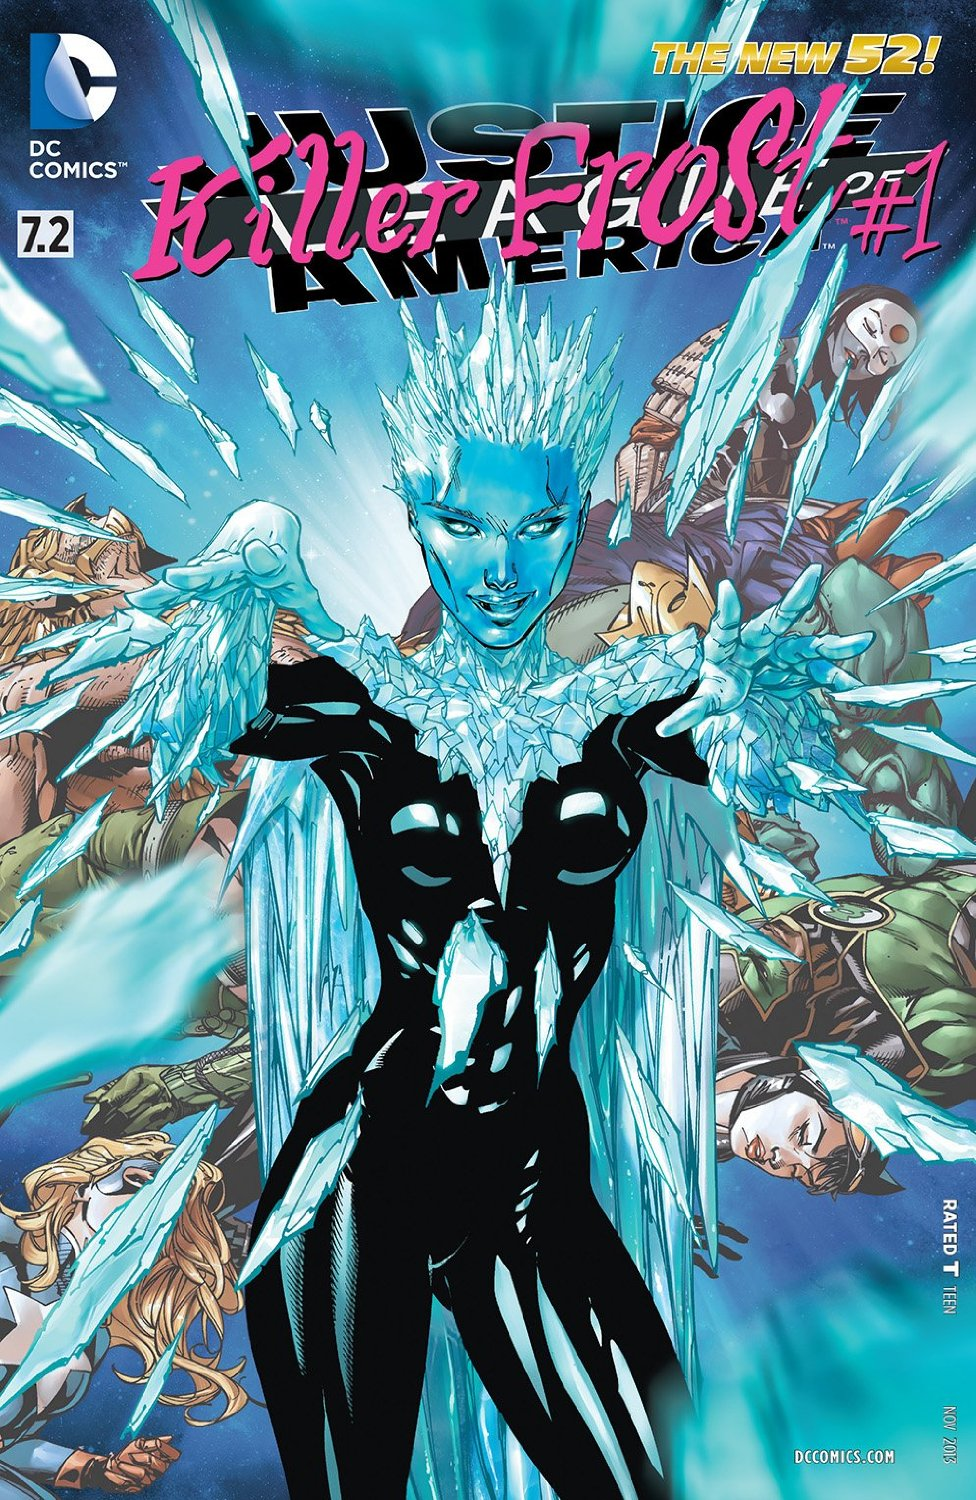 Justice League of America #7.2: Killer Frost #1 by Sterling Gates, Derlis Santacruz, and Tony S Daniel